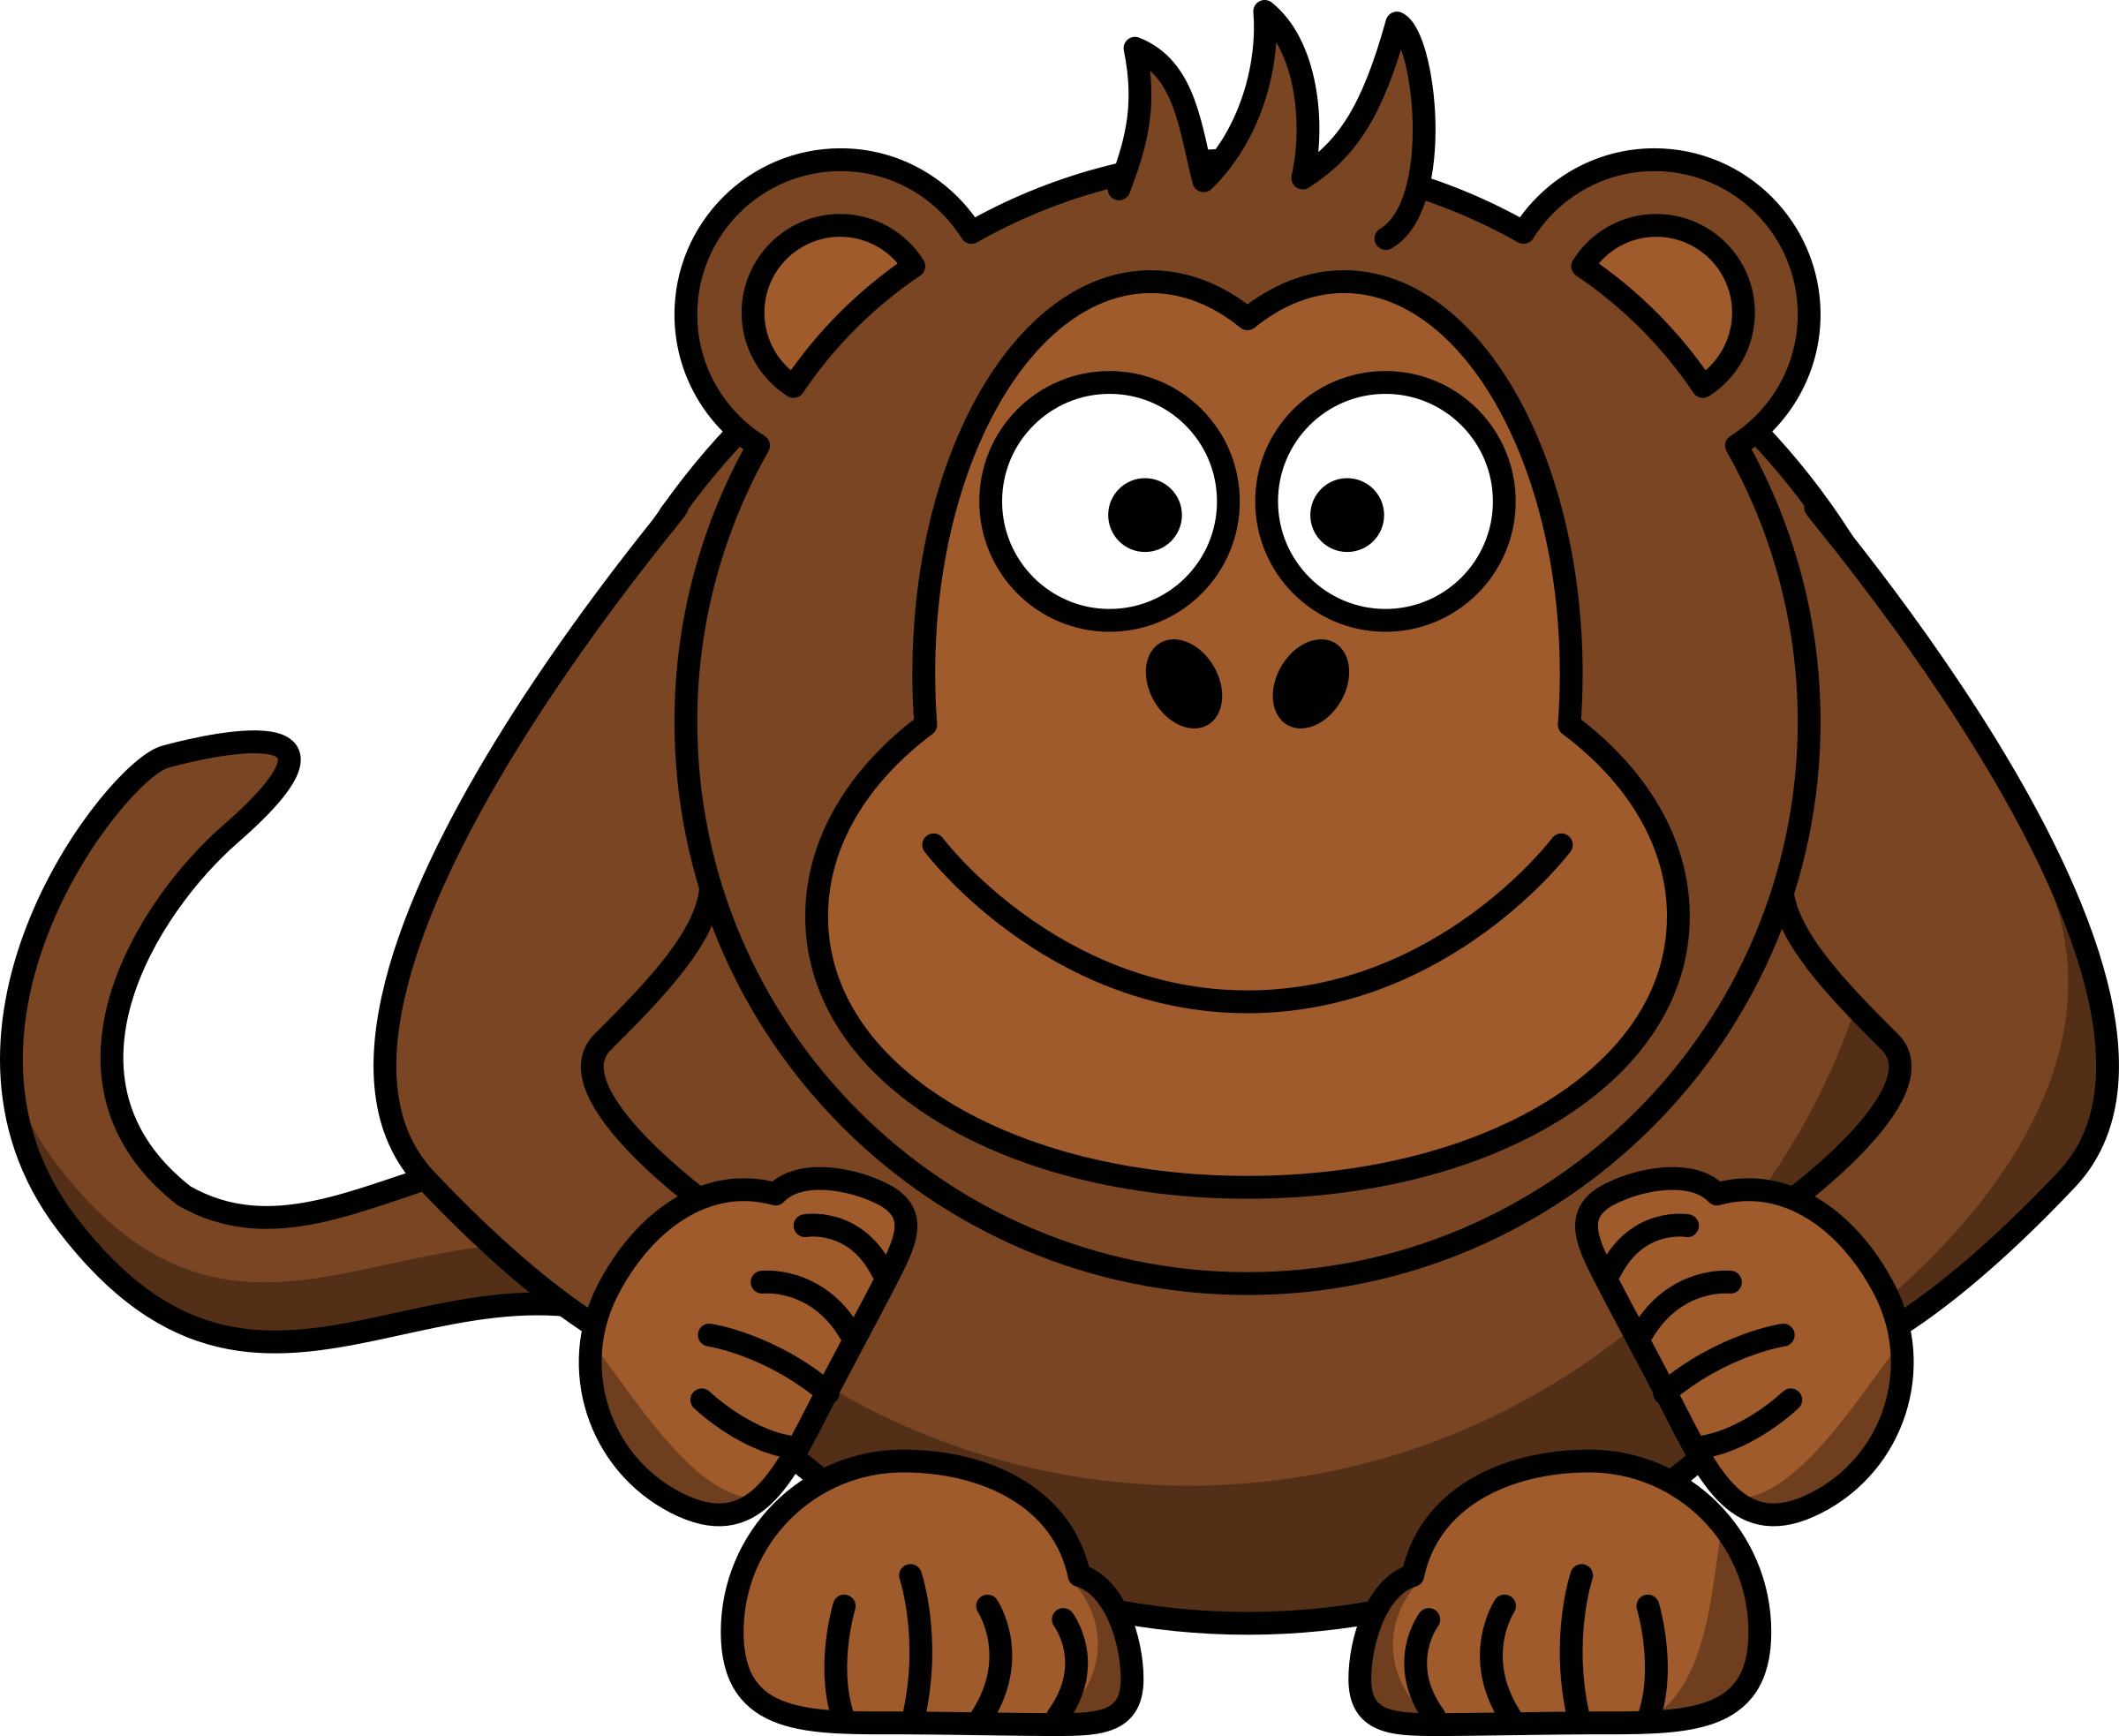 Cartoon image group. Monkey clipart outline